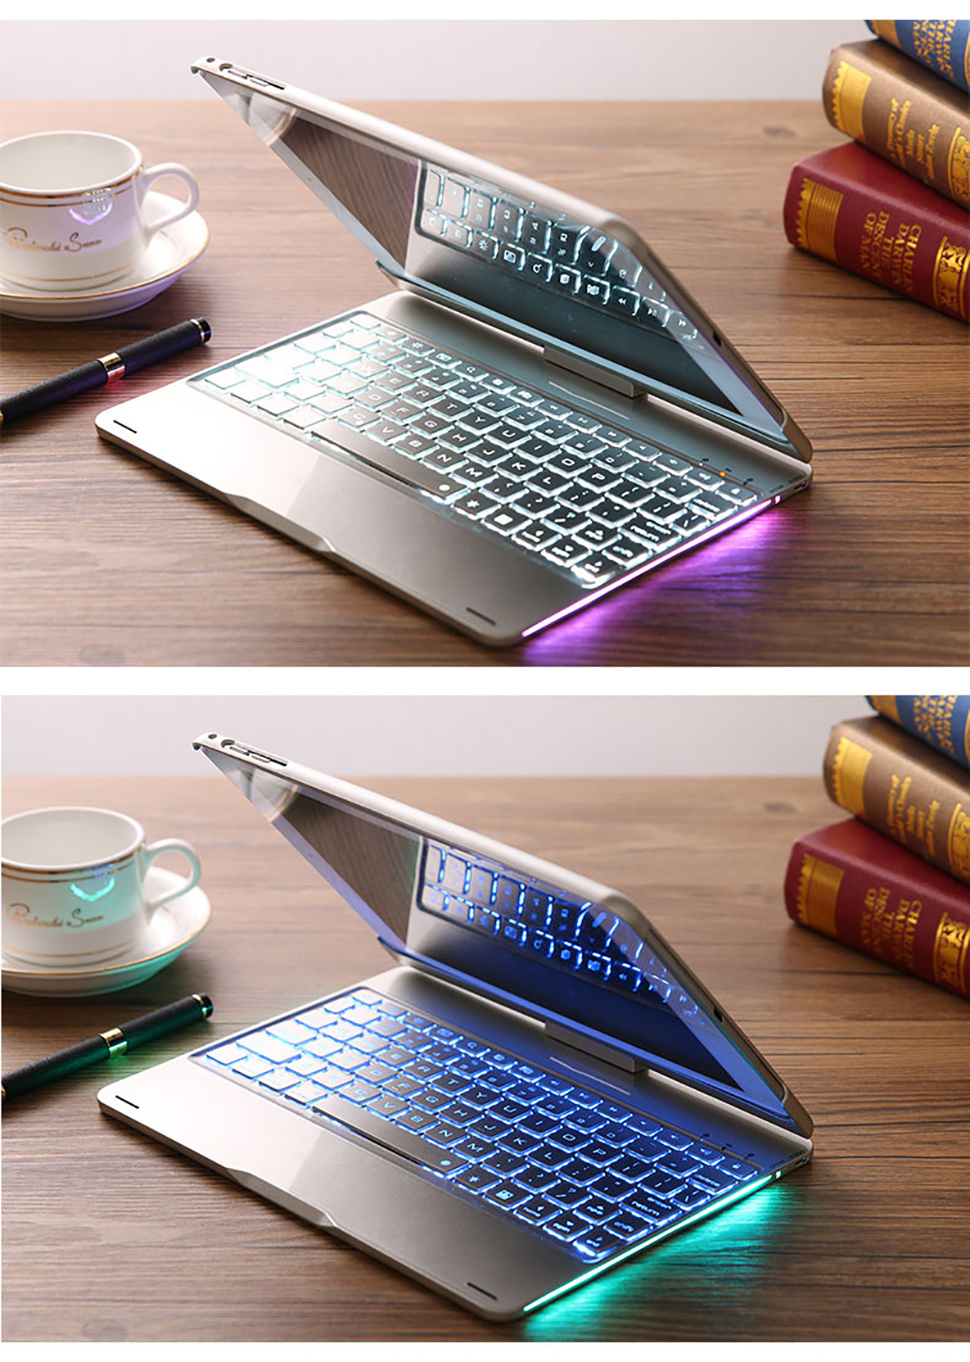 Funda For iPad Air 2 Air 3 Air 1 Case Keyboard 7 Color Backlit 360 Rotation Bluetooth Keyboard Cover For iPad Air 3 10.5 2019 (4)